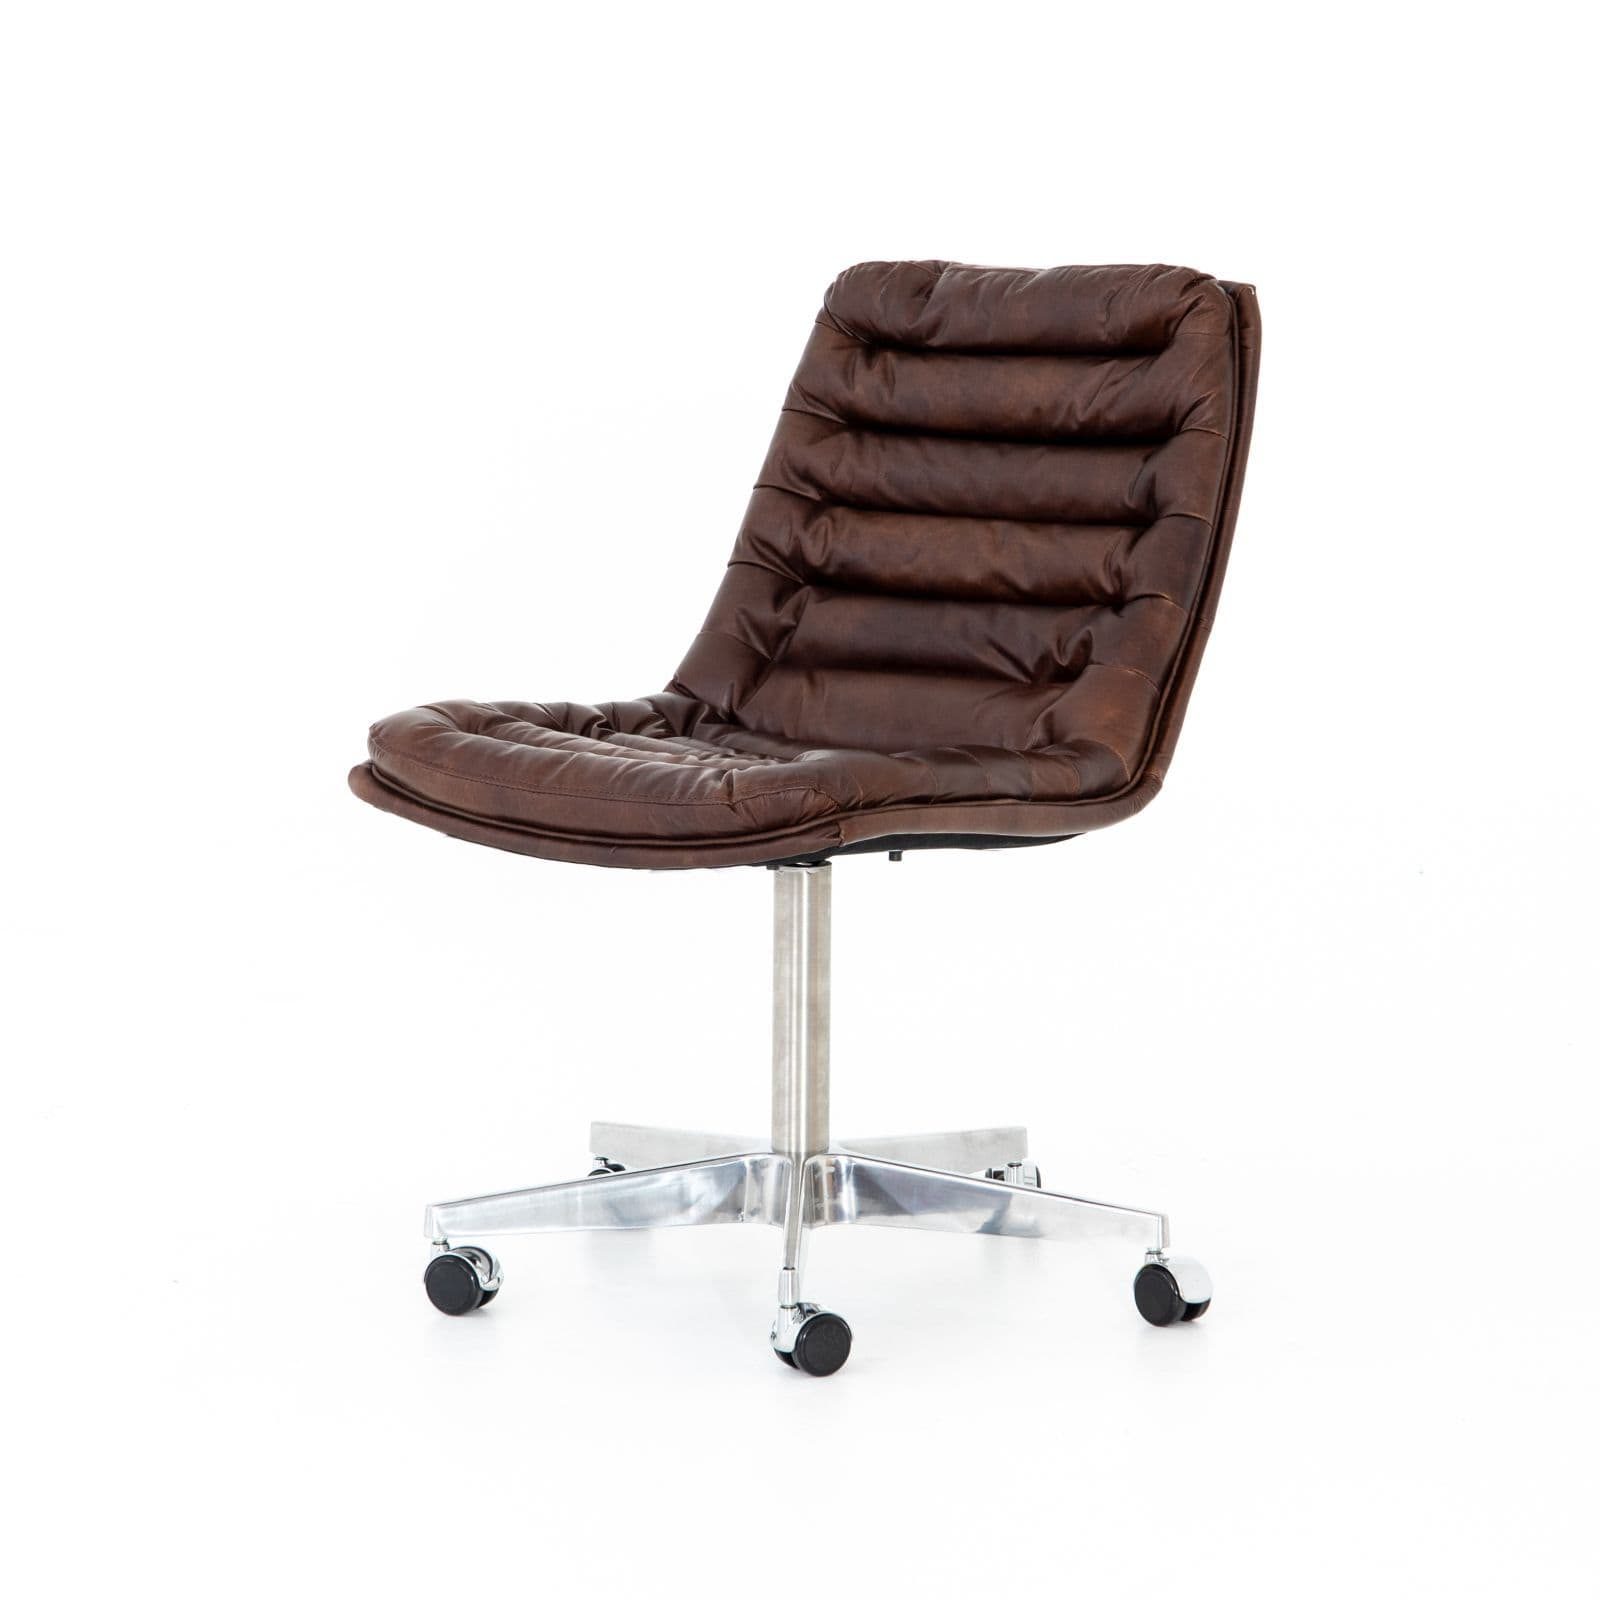 Four Hands Four Hands Malibu Desk Chair - Available in 3 Colors Antique Whiskey CCAR-019